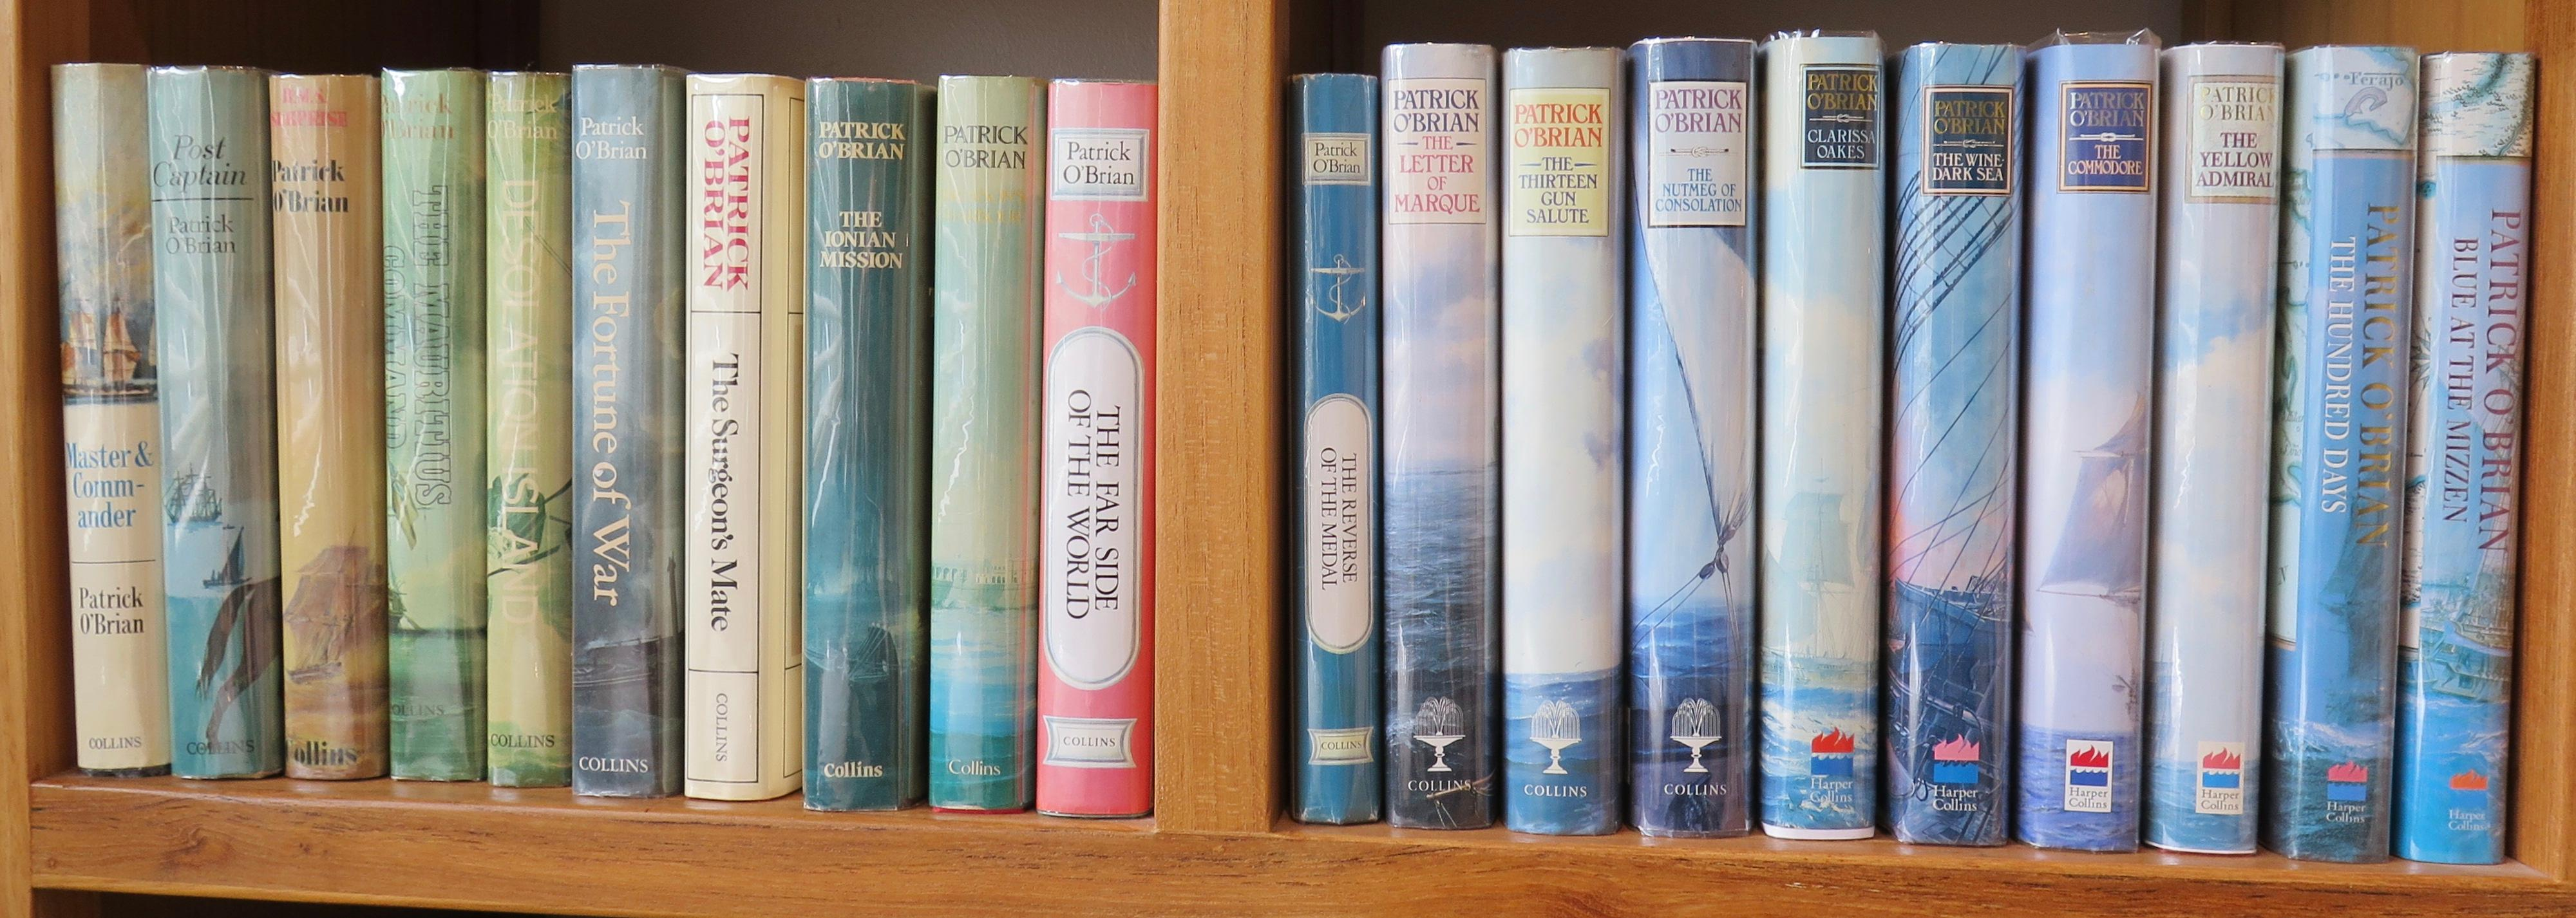 Complete set of Aubery/Maturin Novels.Master and Commander Post Captain HMS Surprise The Mauritius Command Desolation Island Fortune of War The Surge